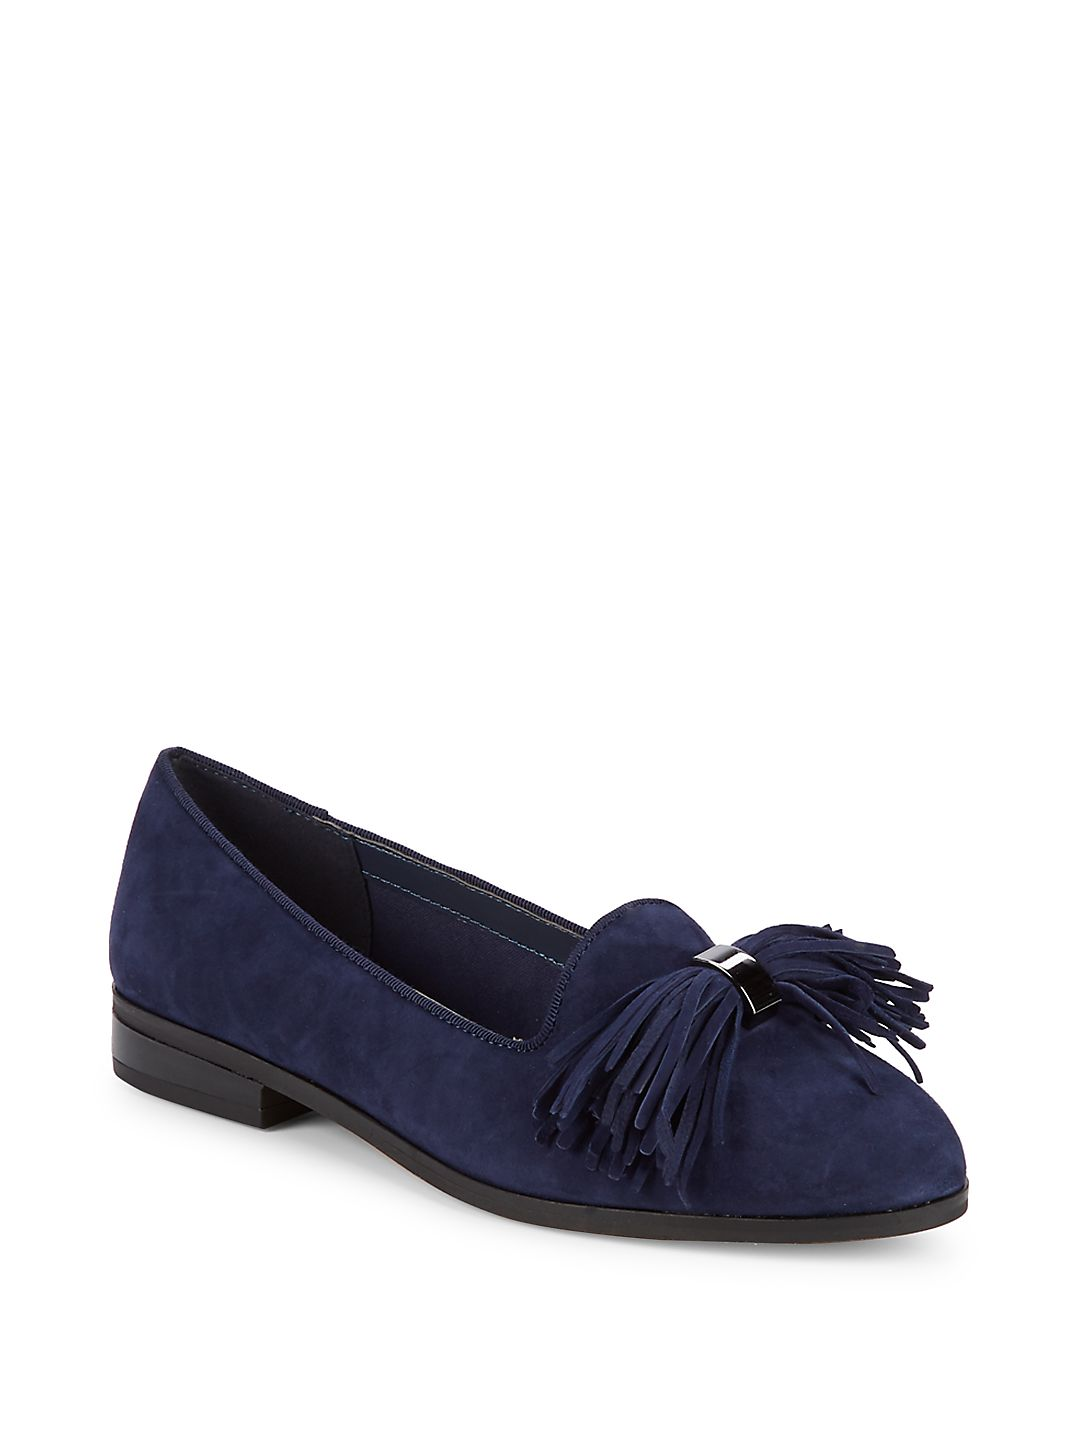 Women's Anne Klein Dixie Flat